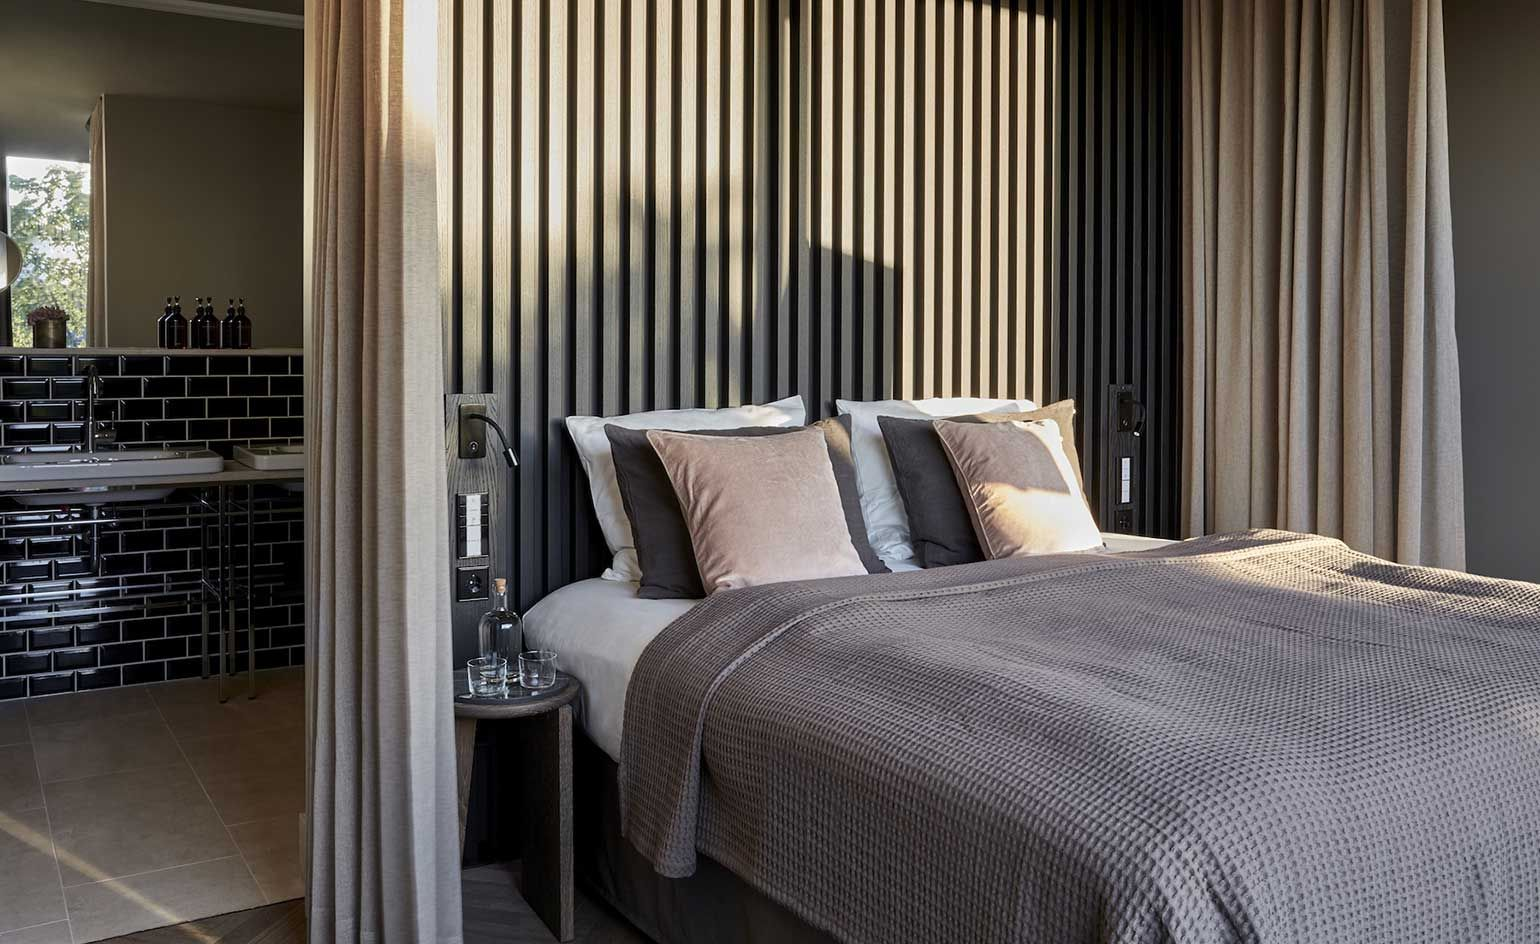 mauritzhof hotel m nster germany urban planning restoration and scale. Black Bedroom Furniture Sets. Home Design Ideas